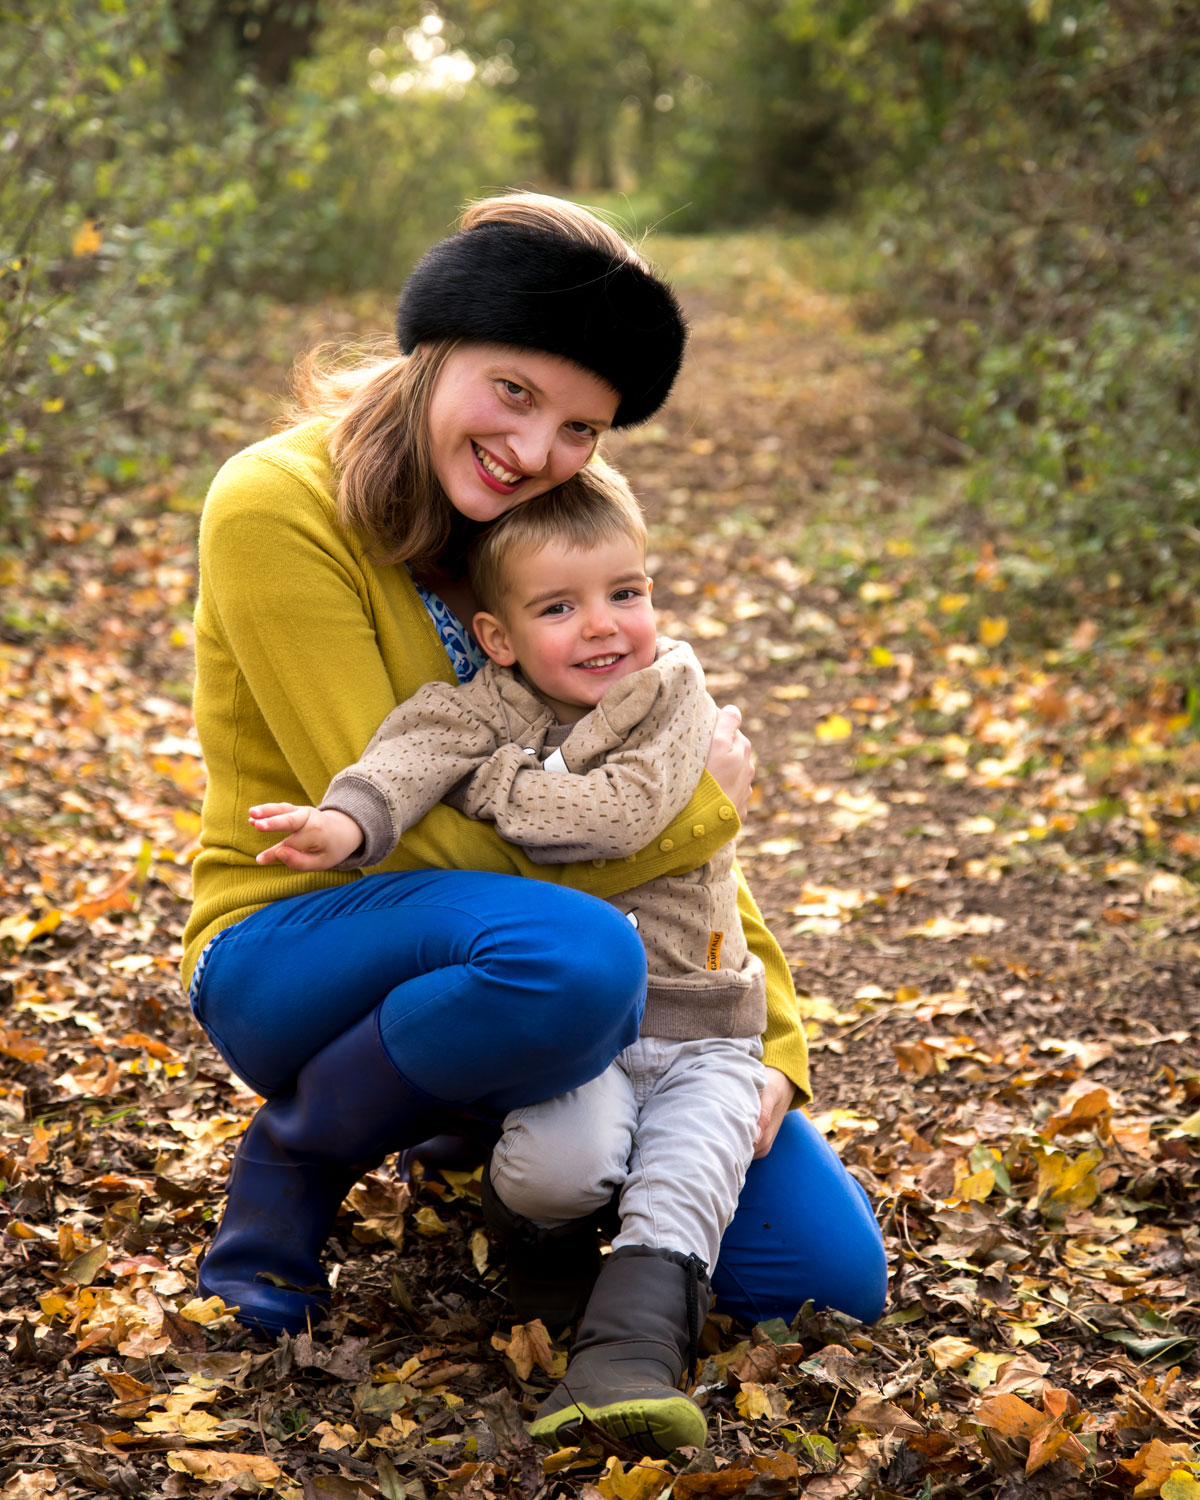 Family_photography_Ely_Cambridgeshire-mum_and_son_ely_country_park.jpg